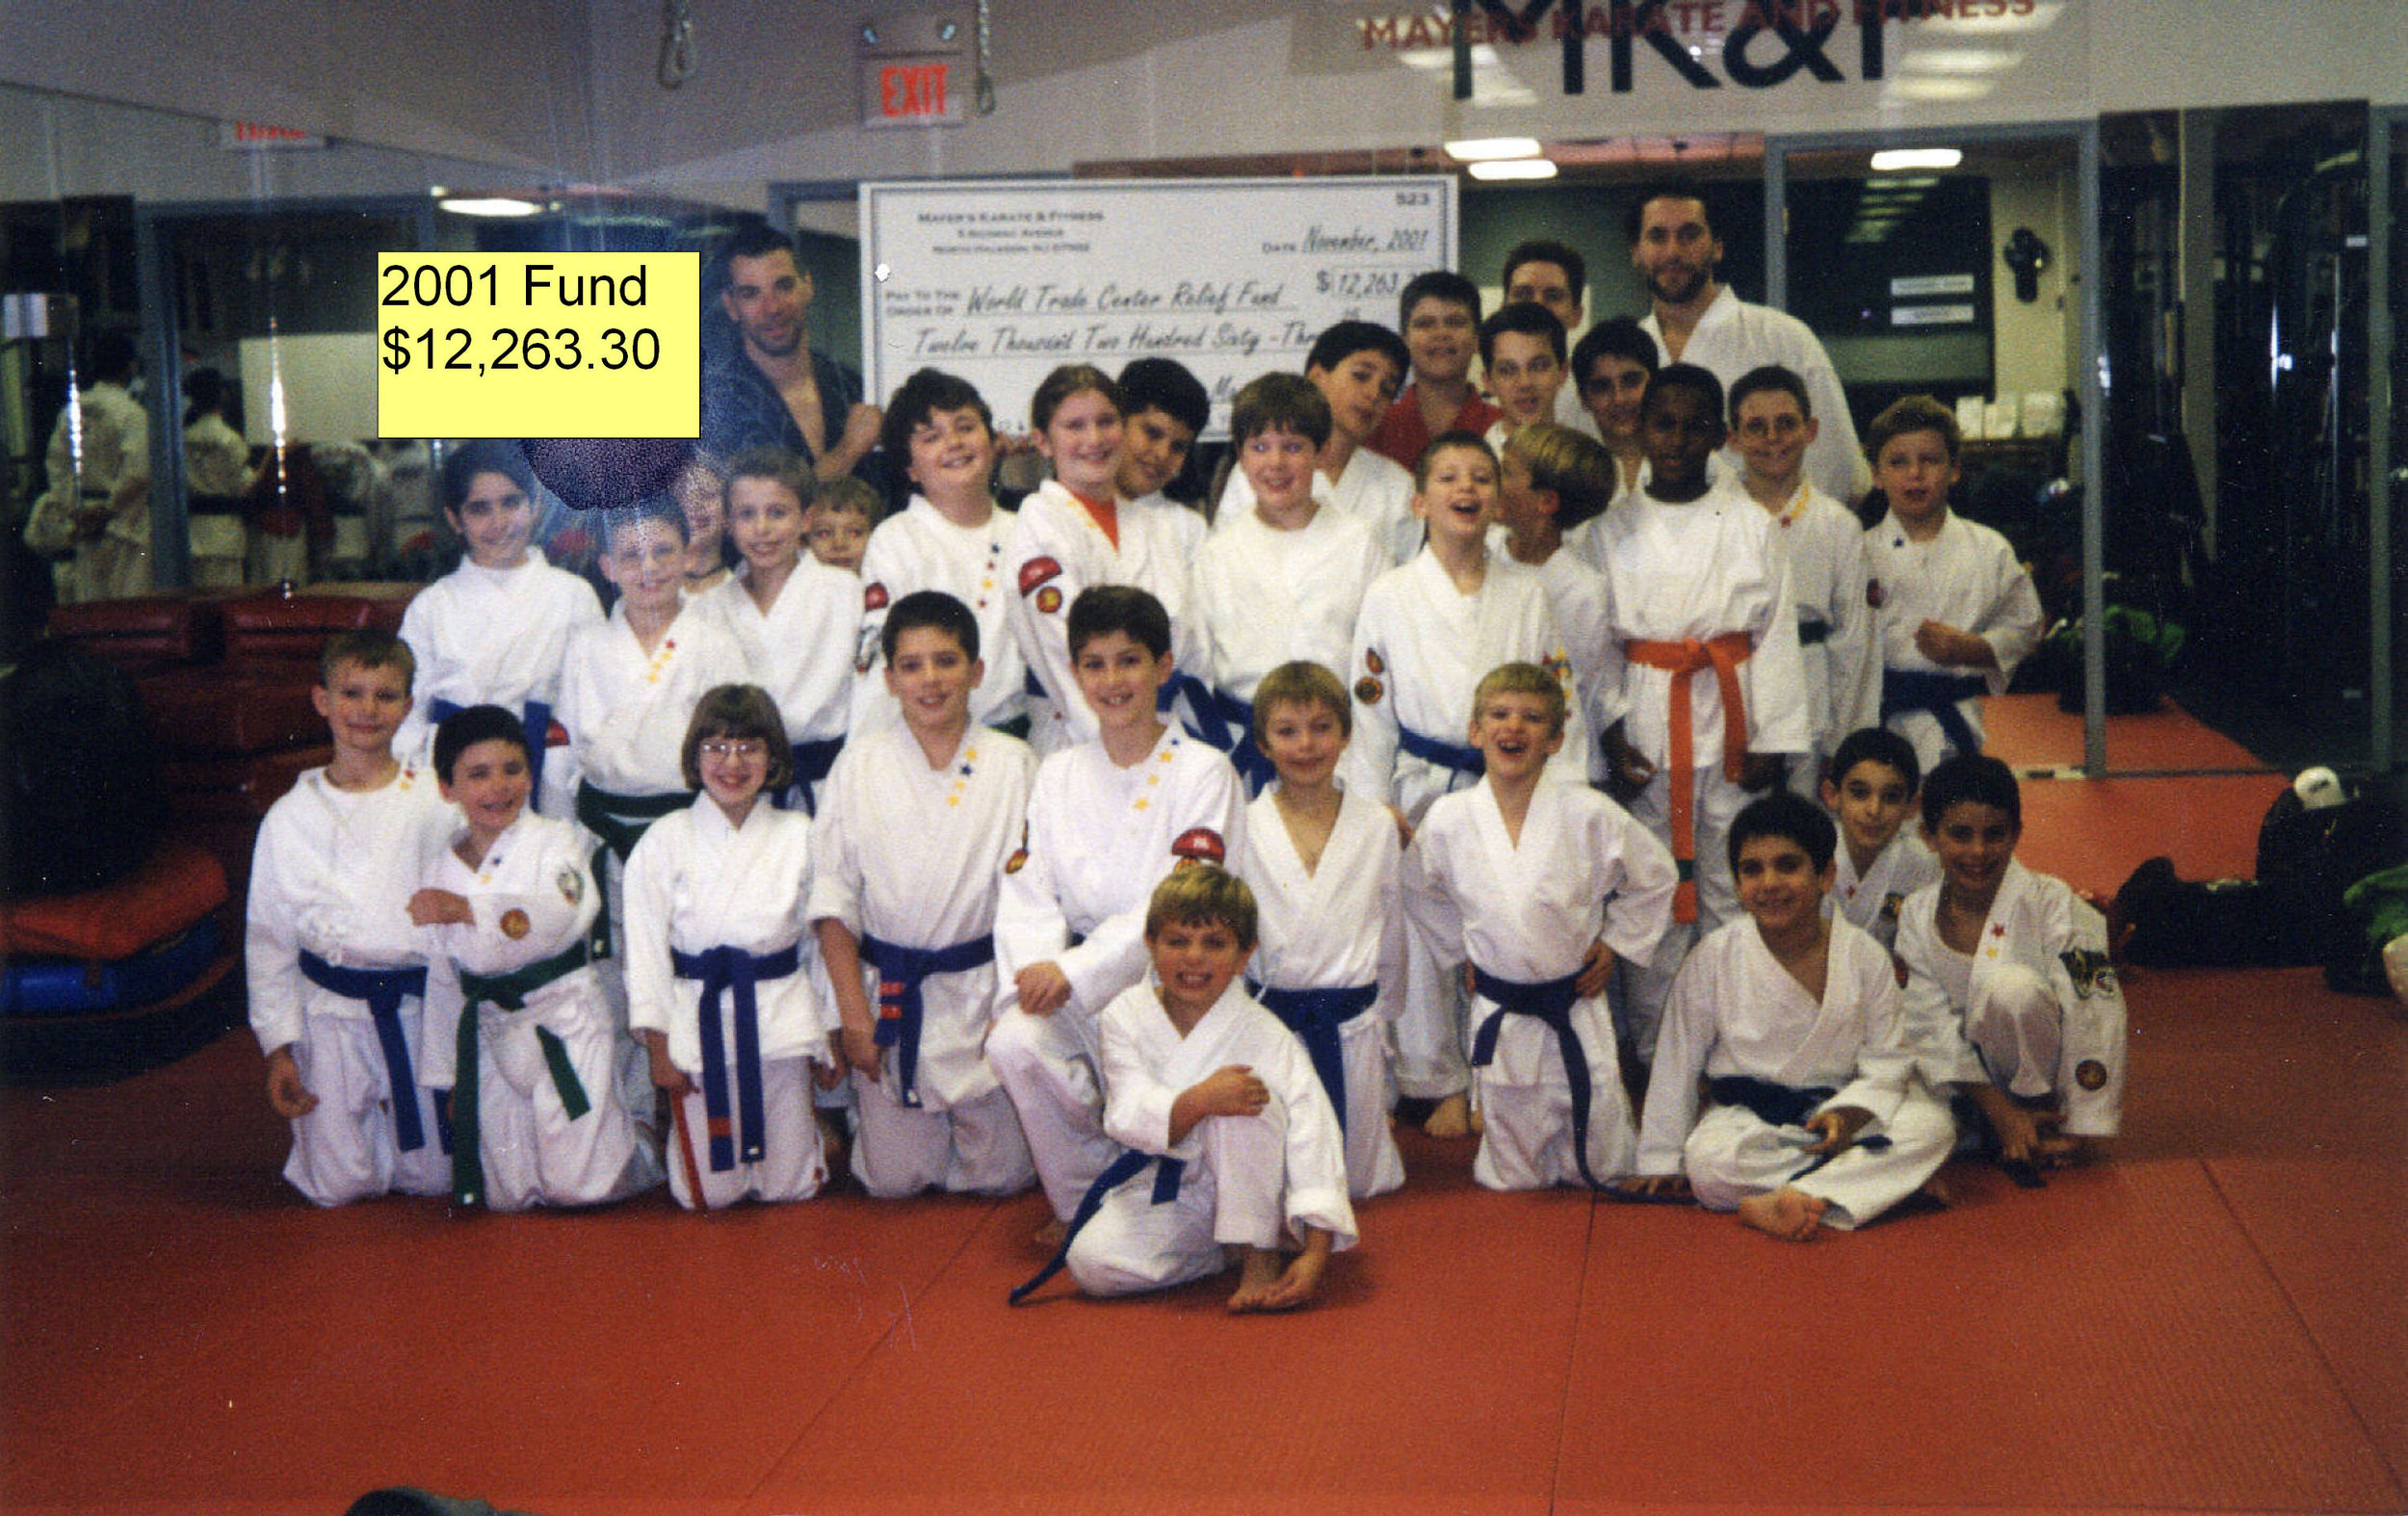 Karate 911 releif fund photo.jpg